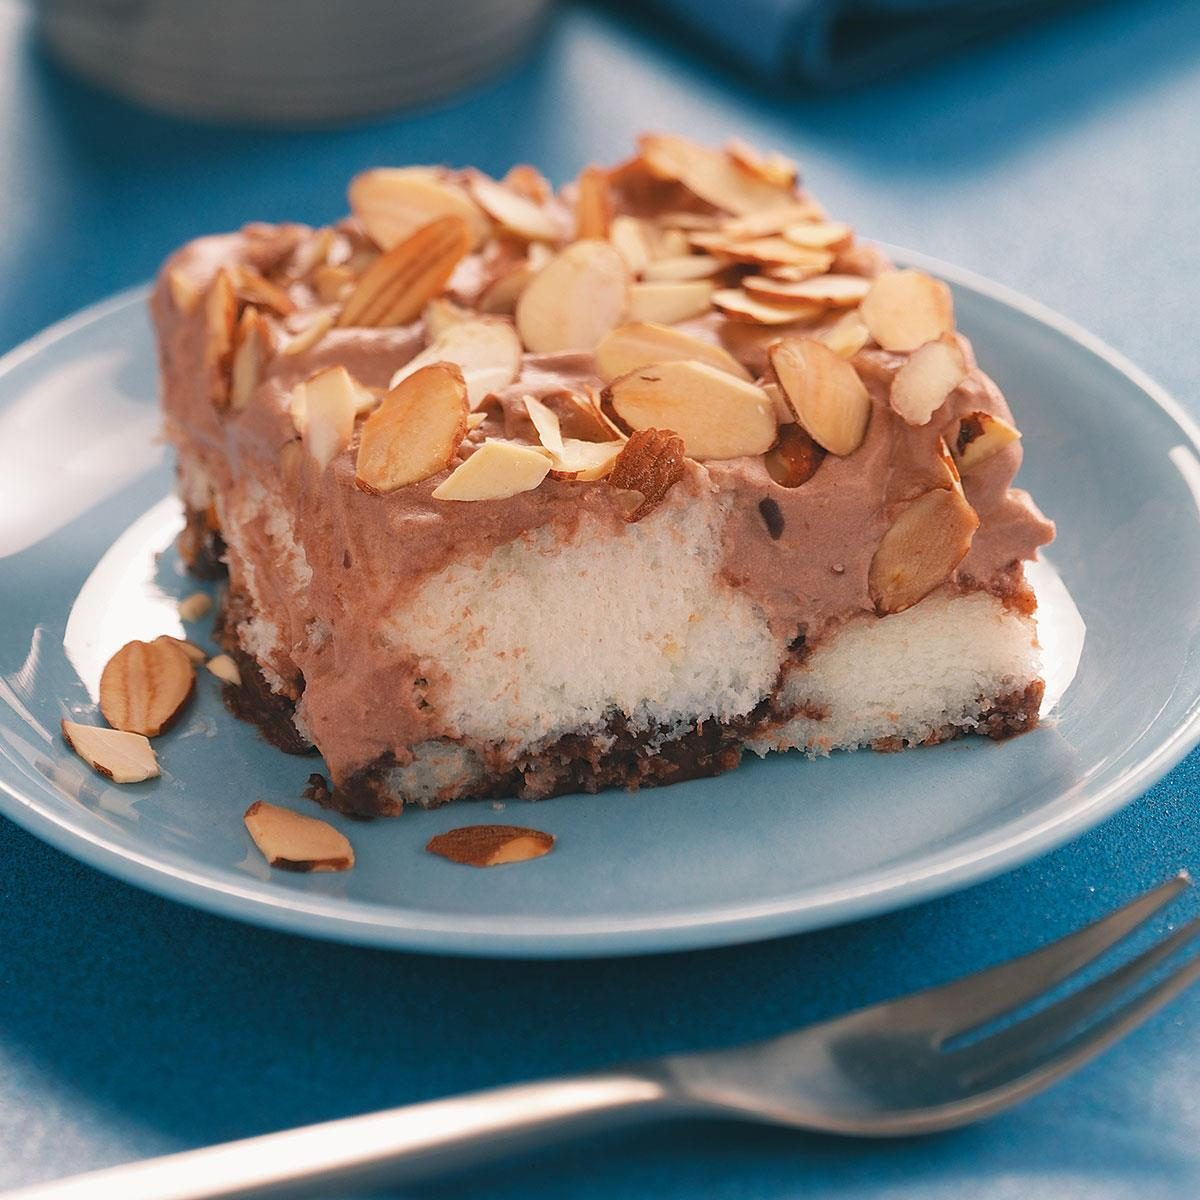 Chocolate Almond Dessert Recipe | Taste of Home